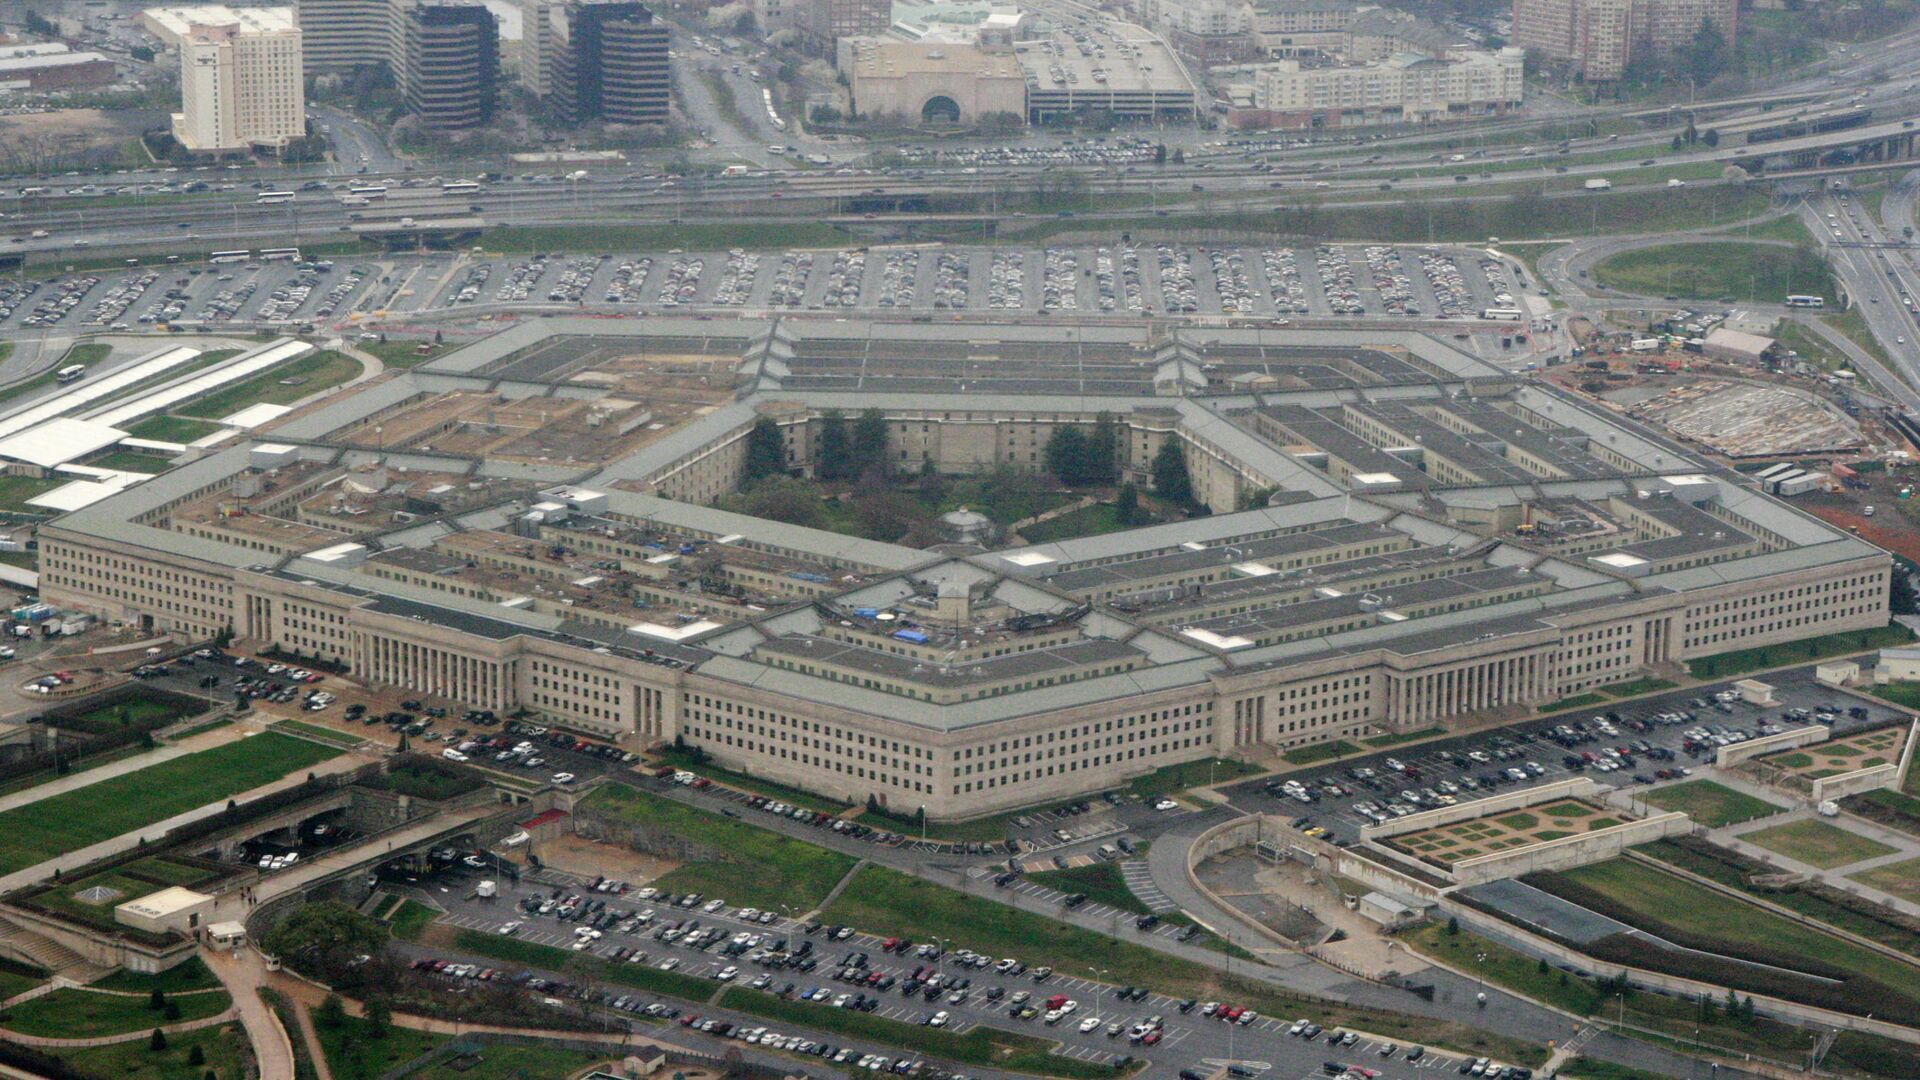 This March 27, 2008, file photo, shows the Pentagon in Washington. The Pentagon said Tuesday, July 6, 2021, that it is canceling a cloud-computing contract with Microsoft that could eventually have been worth $10 billion and will instead pursue a deal with both Microsoft and Amazon. (AP Photo/Charles Dharapak, File) - Sputnik International, 1920, 29.07.2021